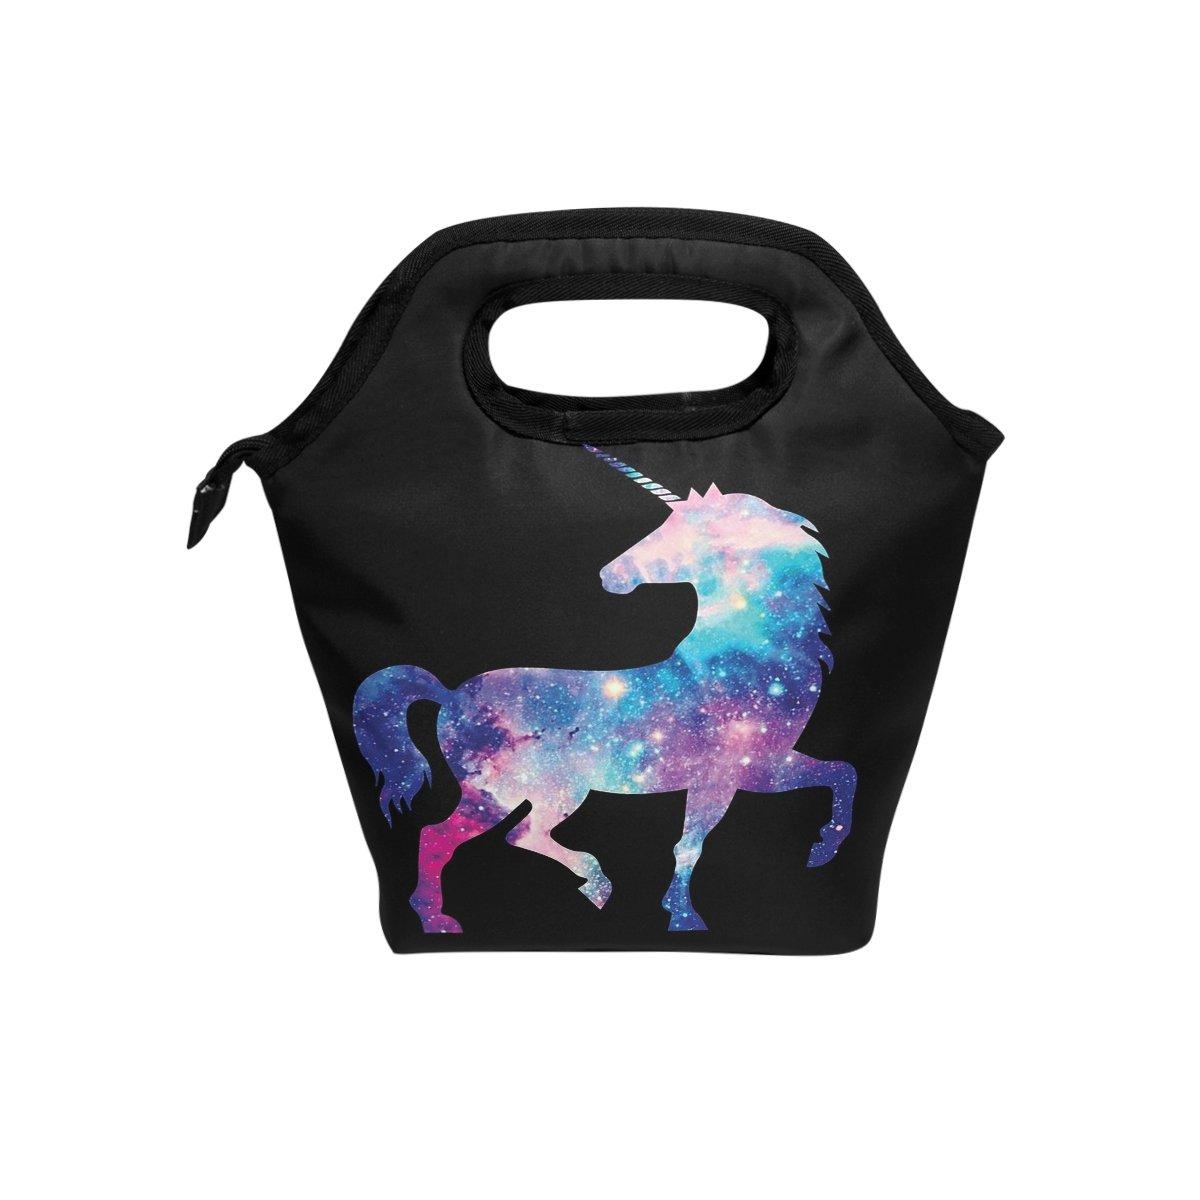 ShineSnow Magic Unicorn Galaxy Star Boys Girls Insulated Lunch Bag Tote Handbag, Cartoon Animal Horse lunchbox Food Container Gourmet Tote Cooler warm Pouch For School work Office